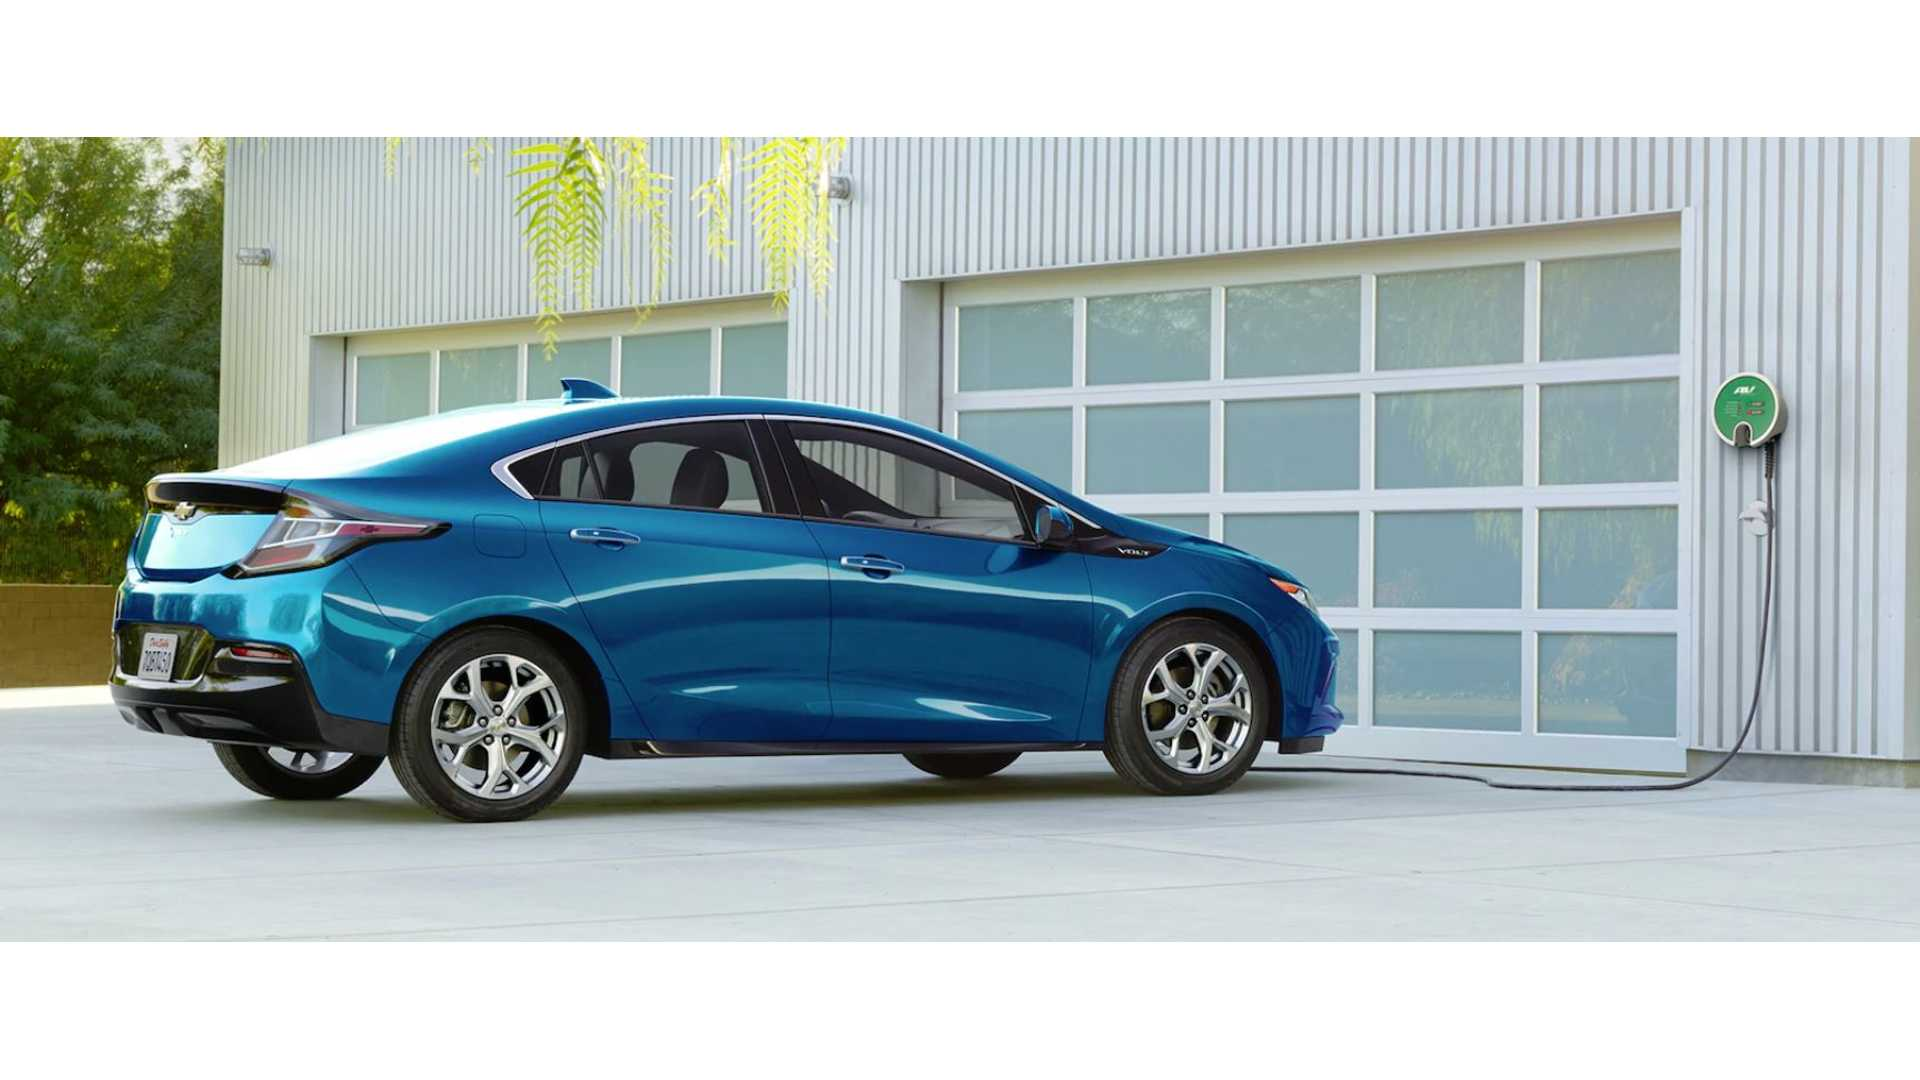 74 New 2019 Chevy Volt Redesign